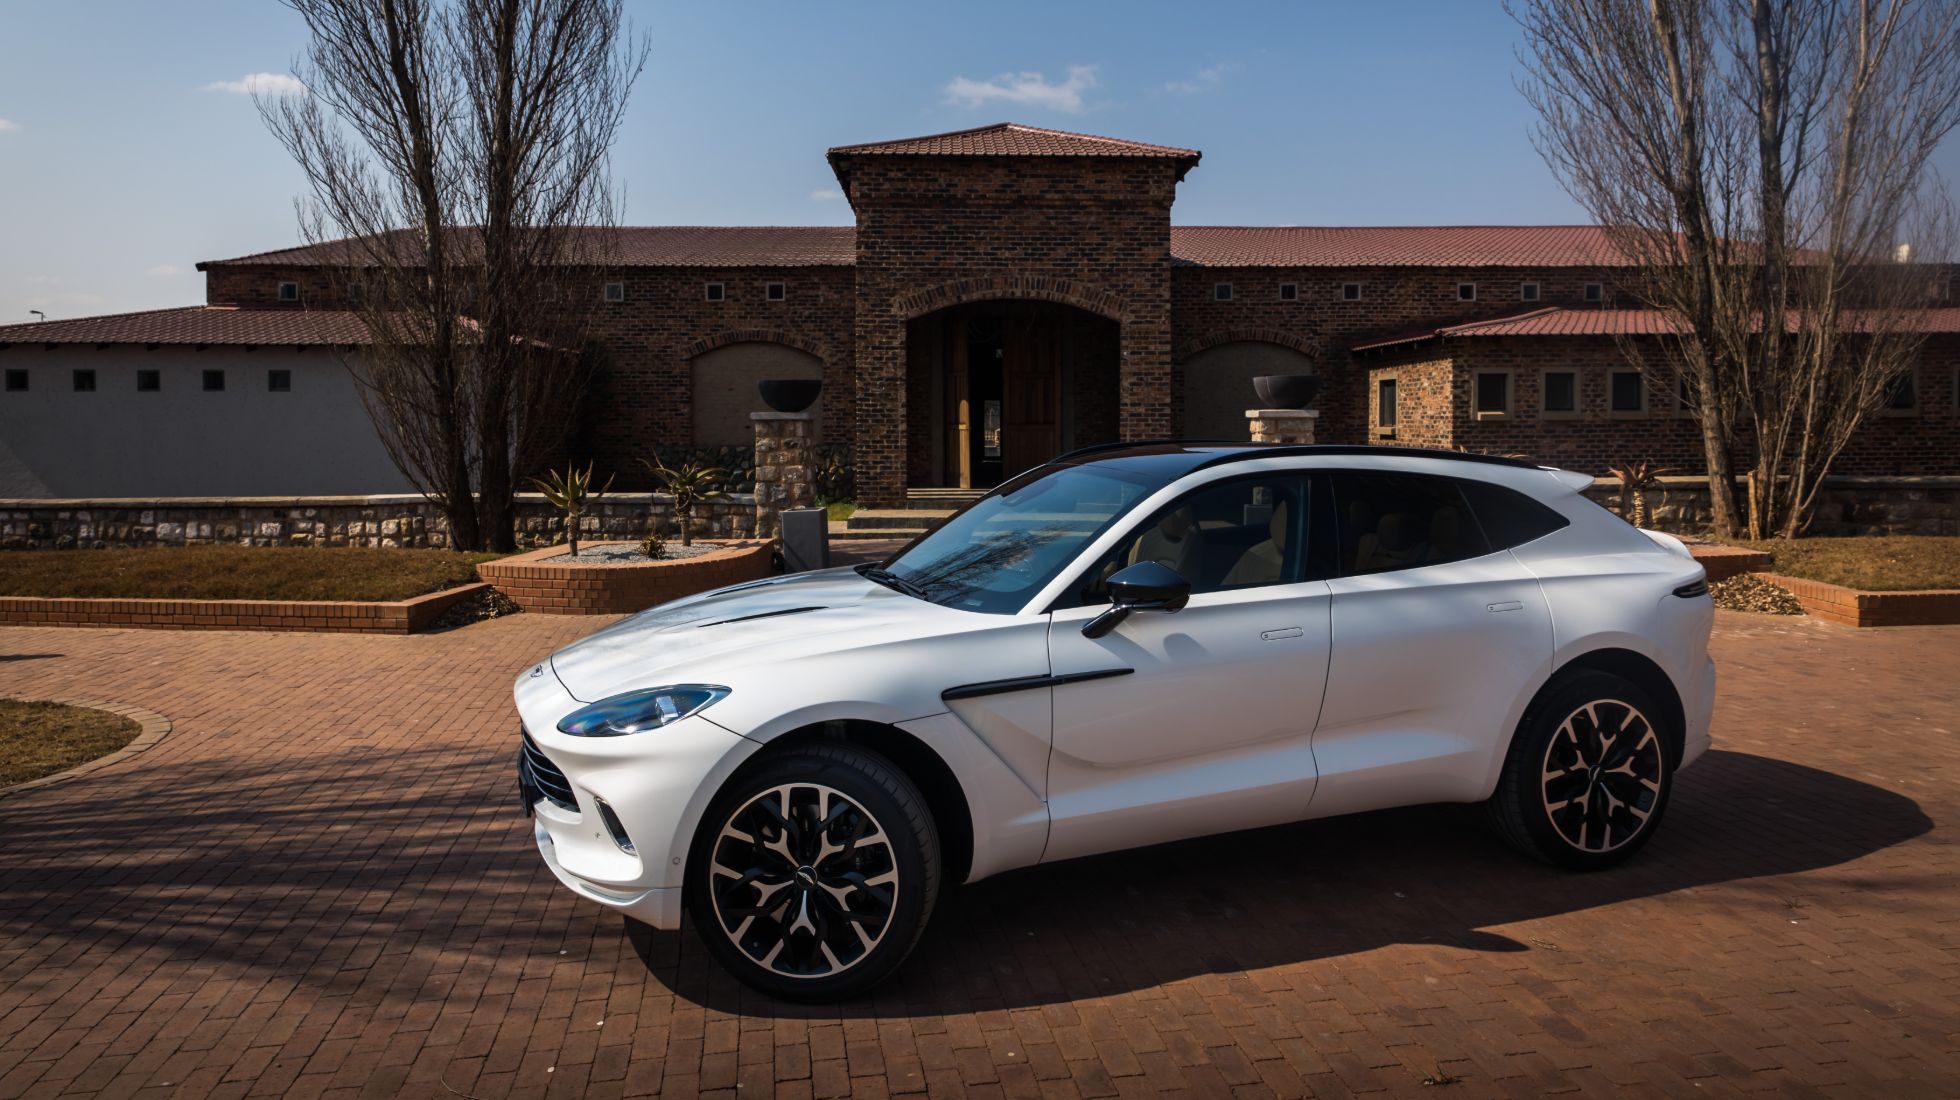 Review of the Aston Martin DBX